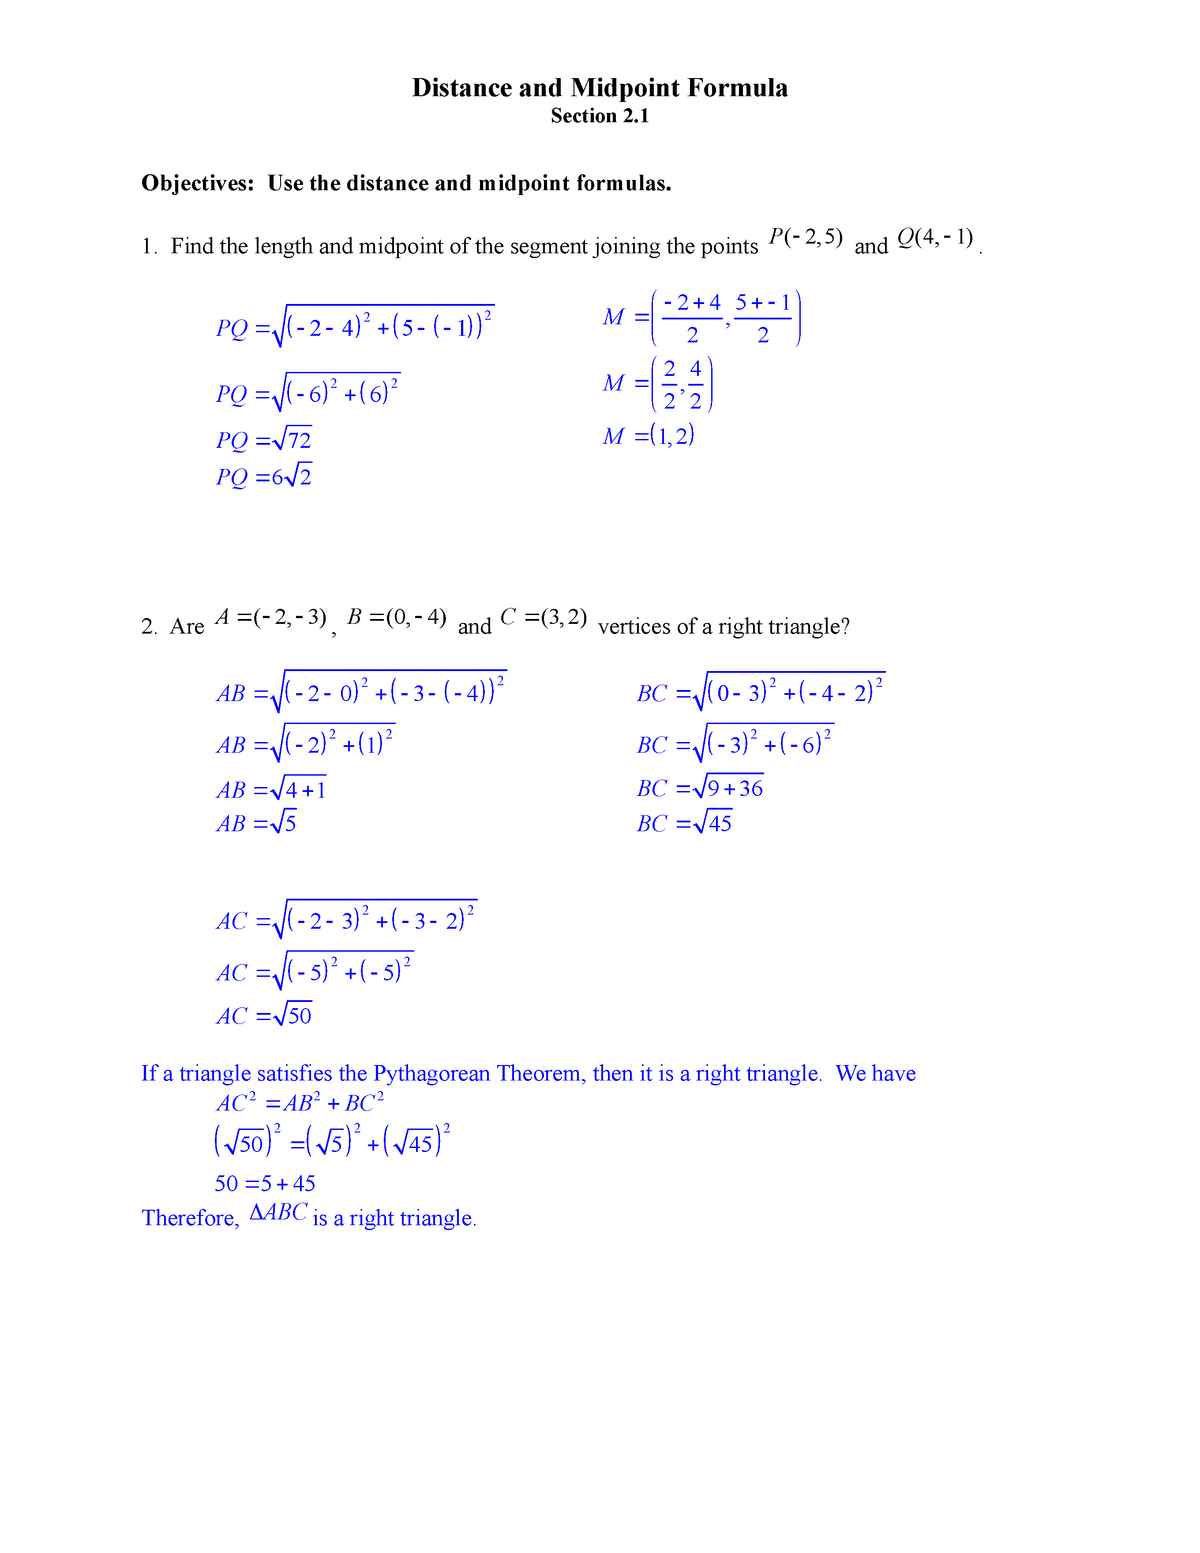 Section 2 1 - Distance and MIdpoint Formula - Solutions